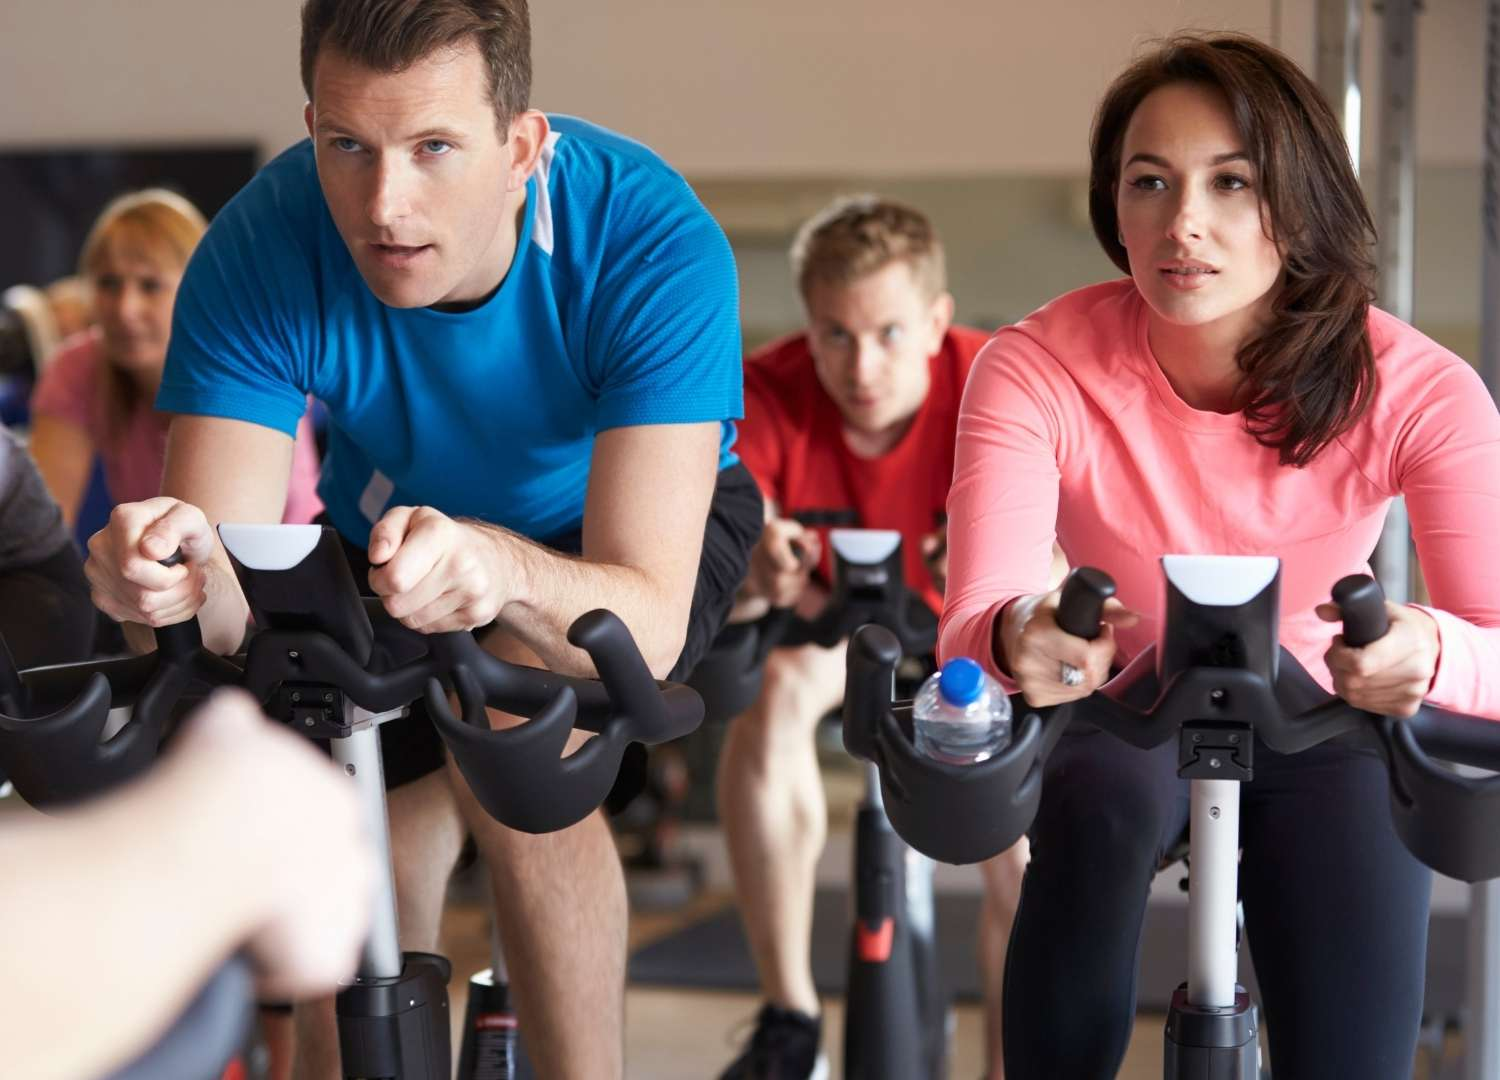 Group of people using gym-bikes